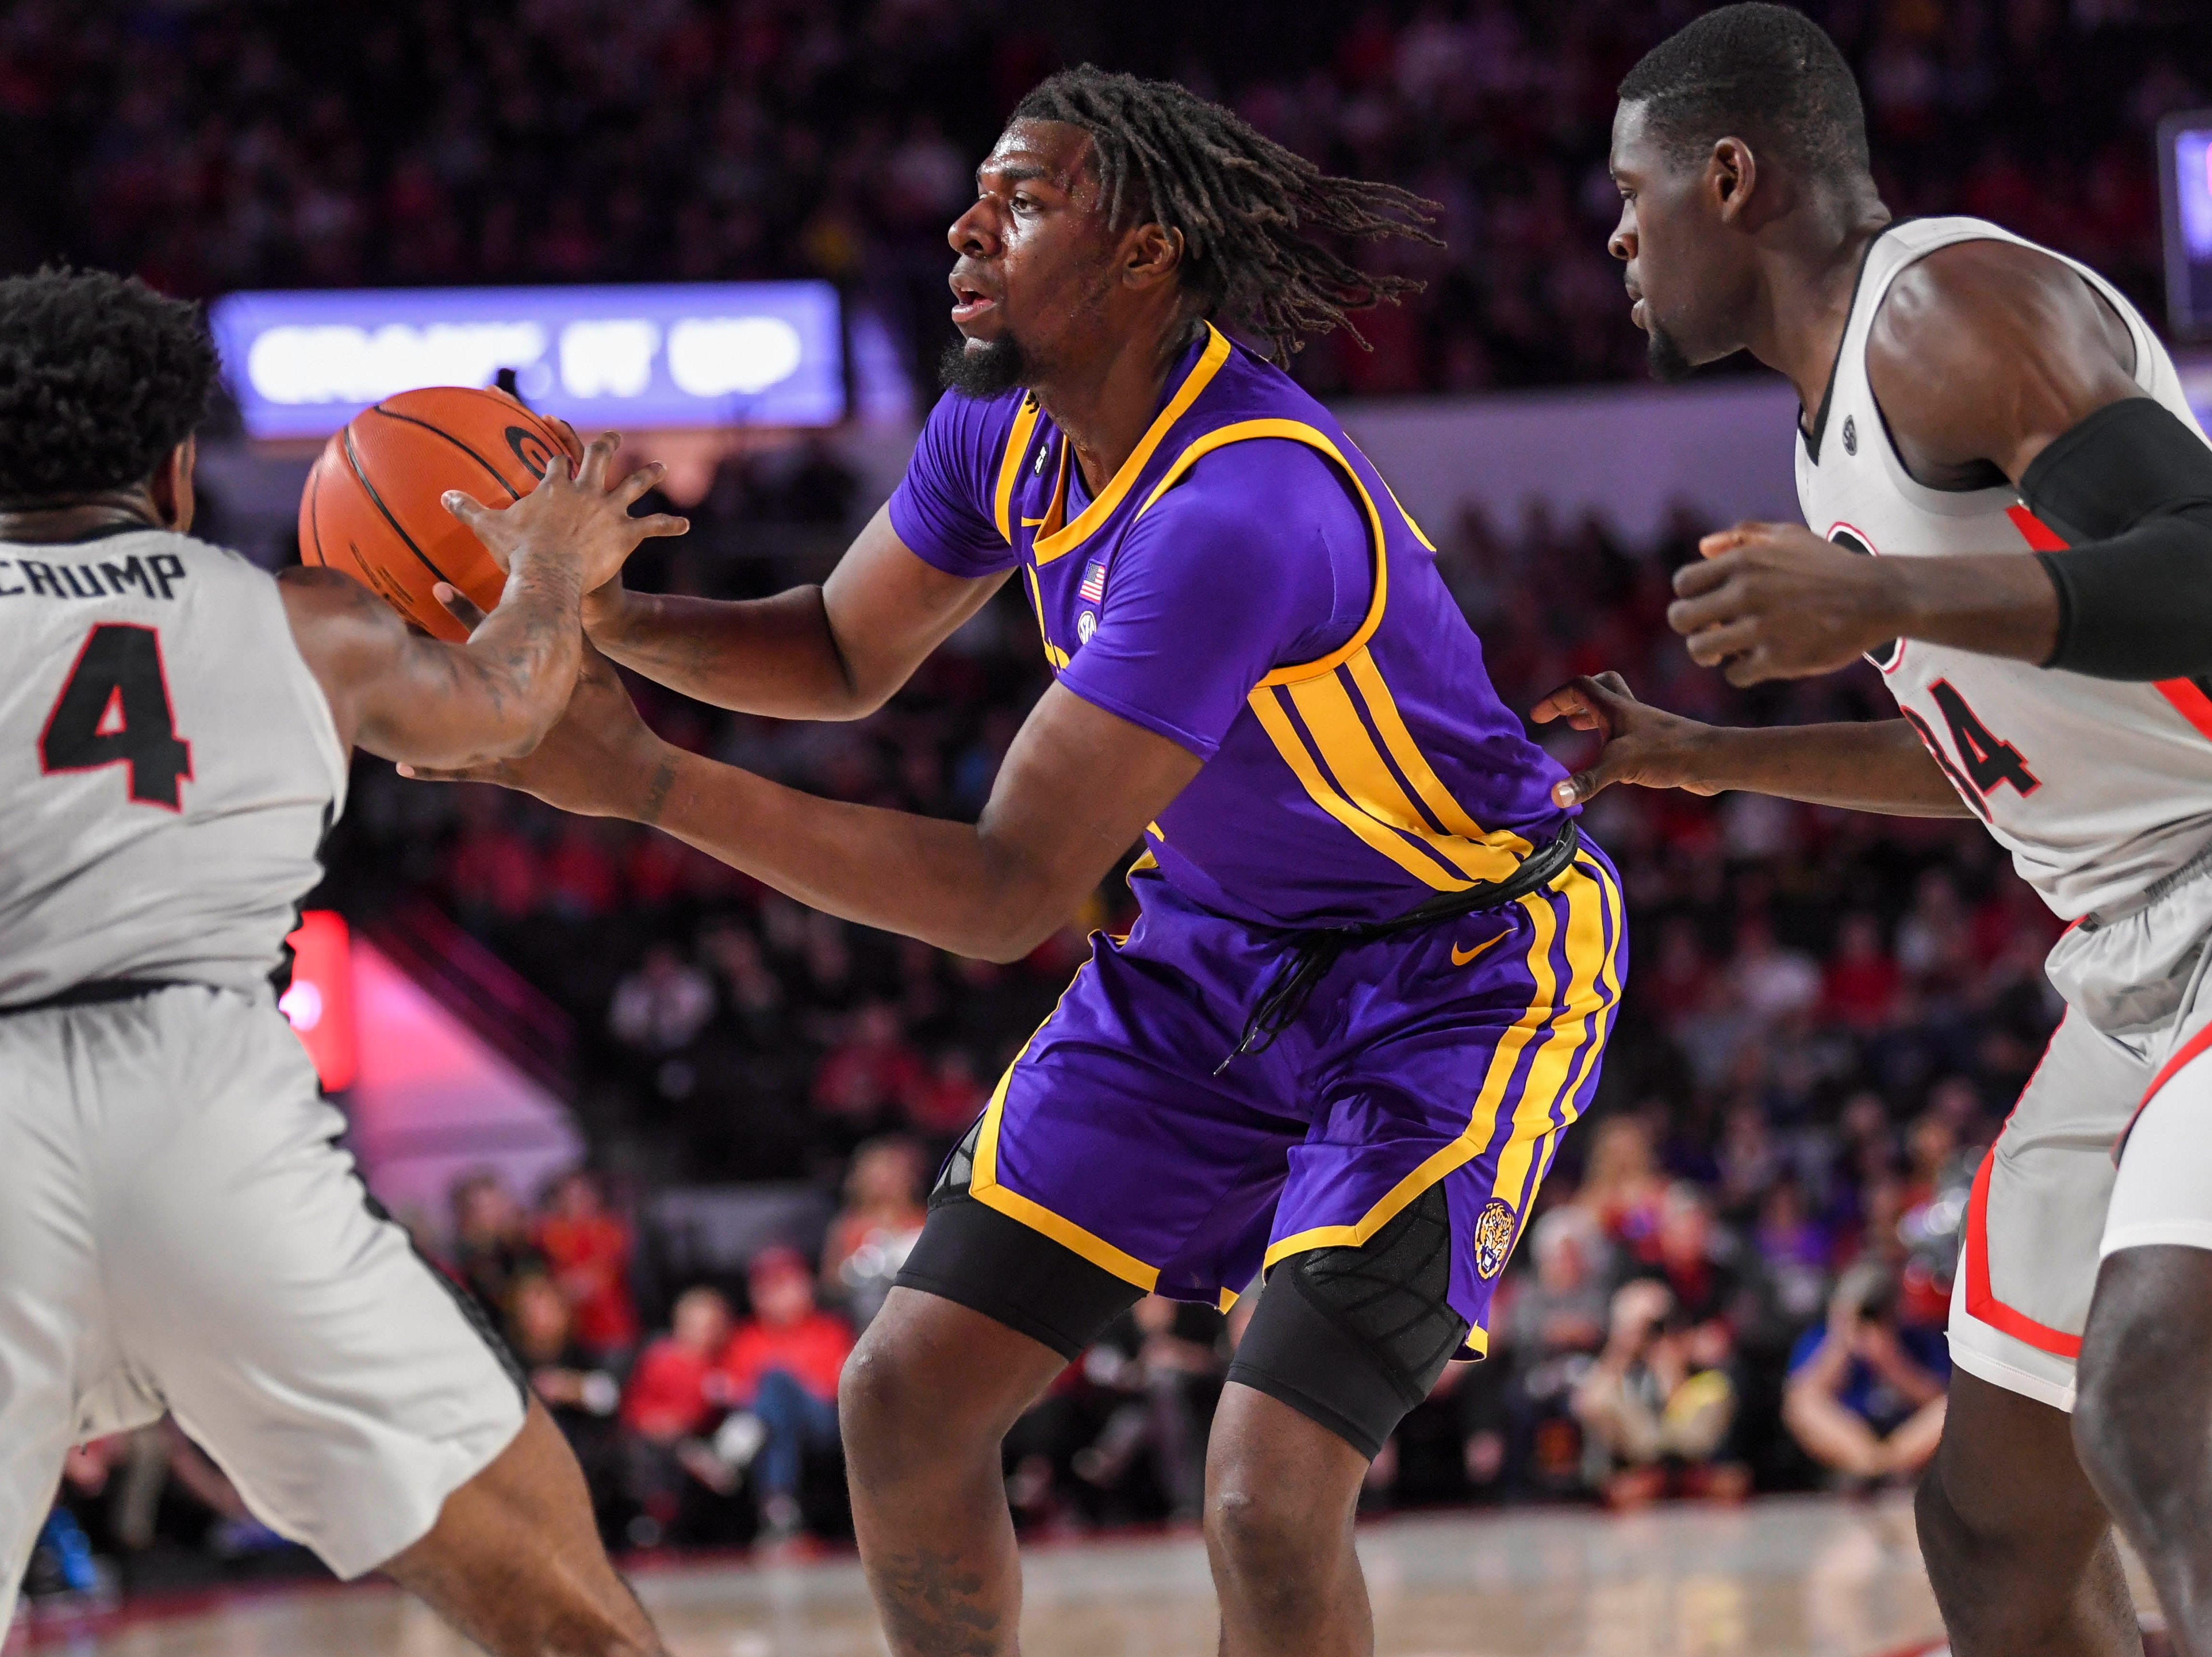 Feb 16, 2019; Athens, GA, USA; LSU Tigers forward Naz Reid (0) passes the ball against Georgia Bulldogs guard Tyree Crump (4) during the first half at Stegeman Coliseum. Mandatory Credit: Dale Zanine-USA TODAY Sports